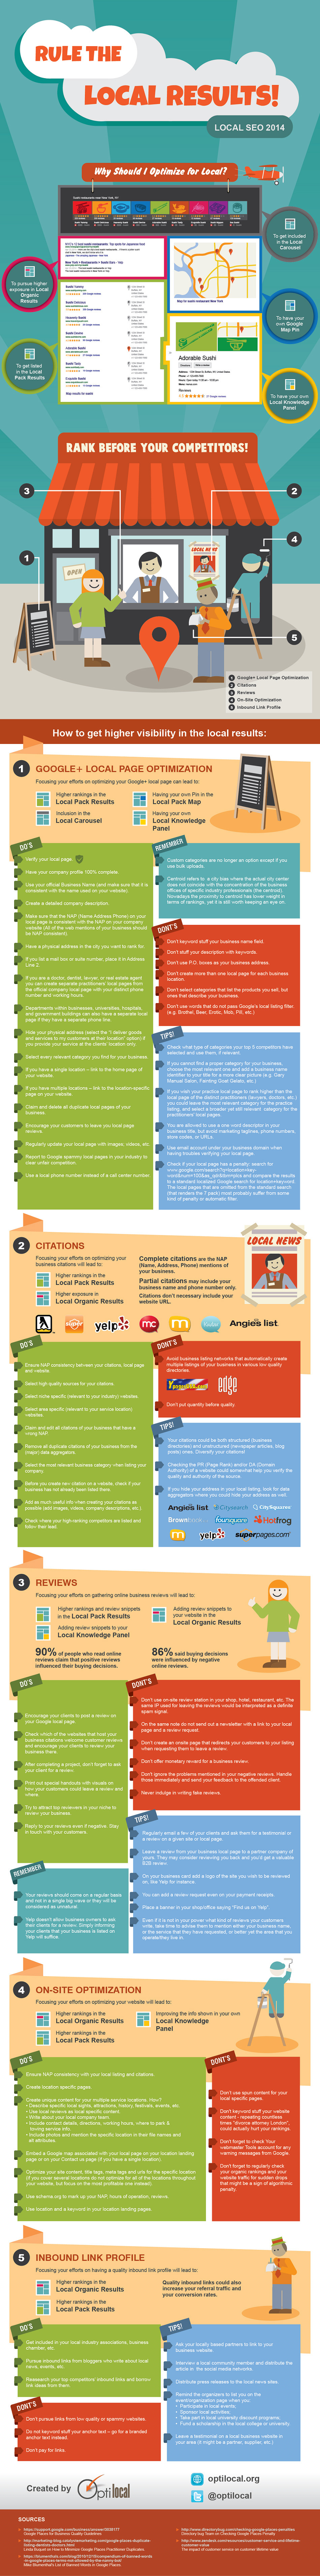 local seo infographic 2014